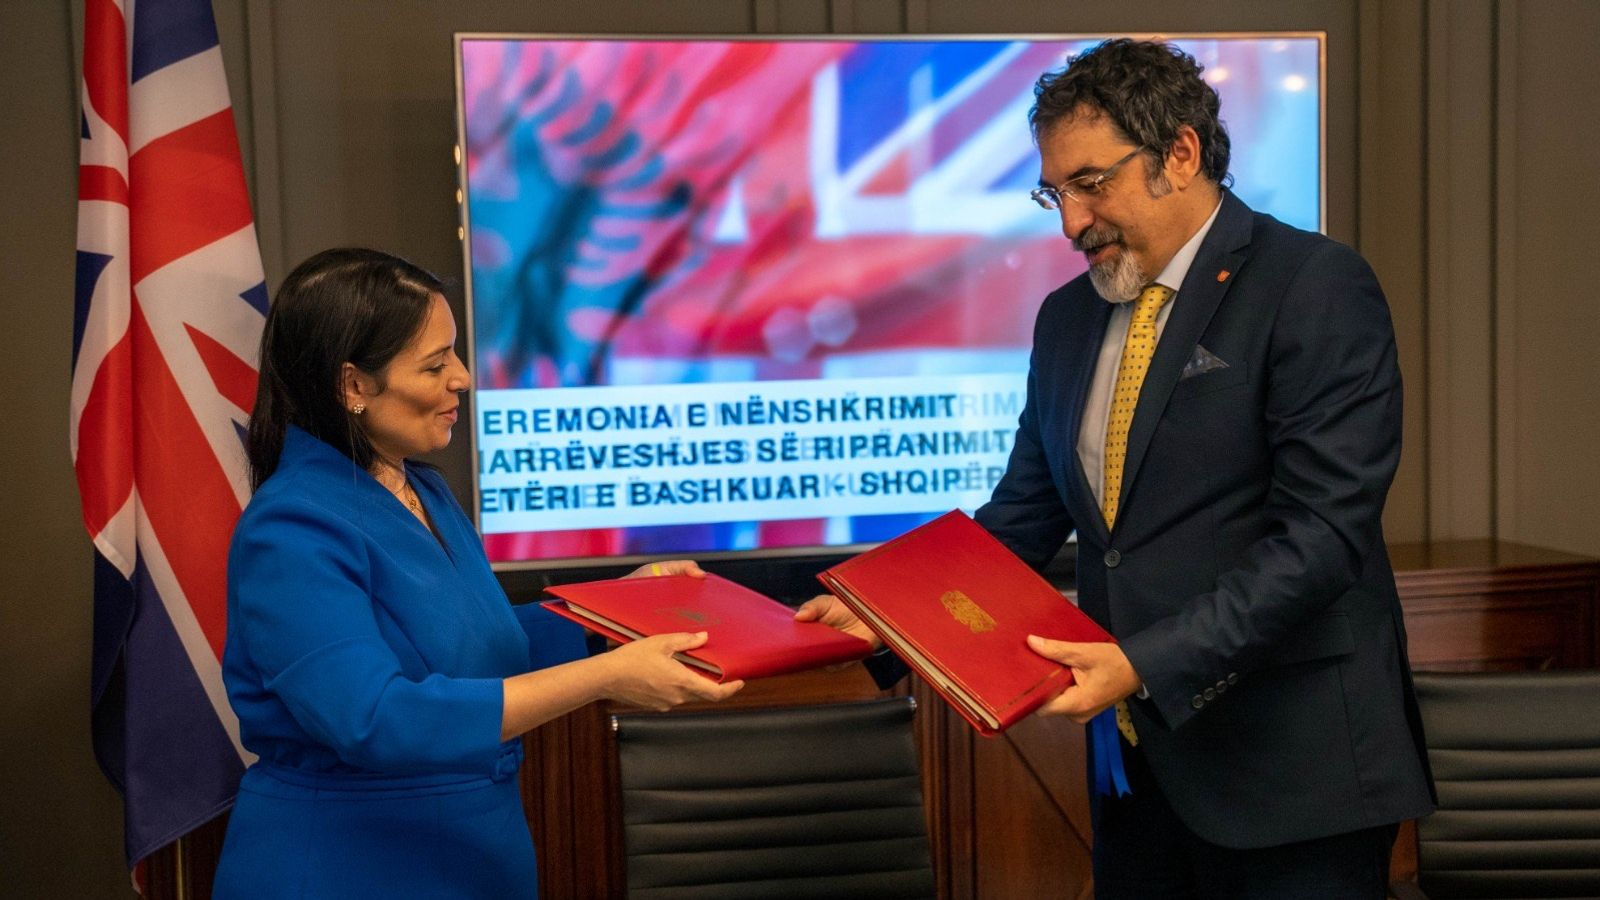 Priti Patel signs deal to remove Albanian criminals and unsuccessful asylum seekers from UK more quickly